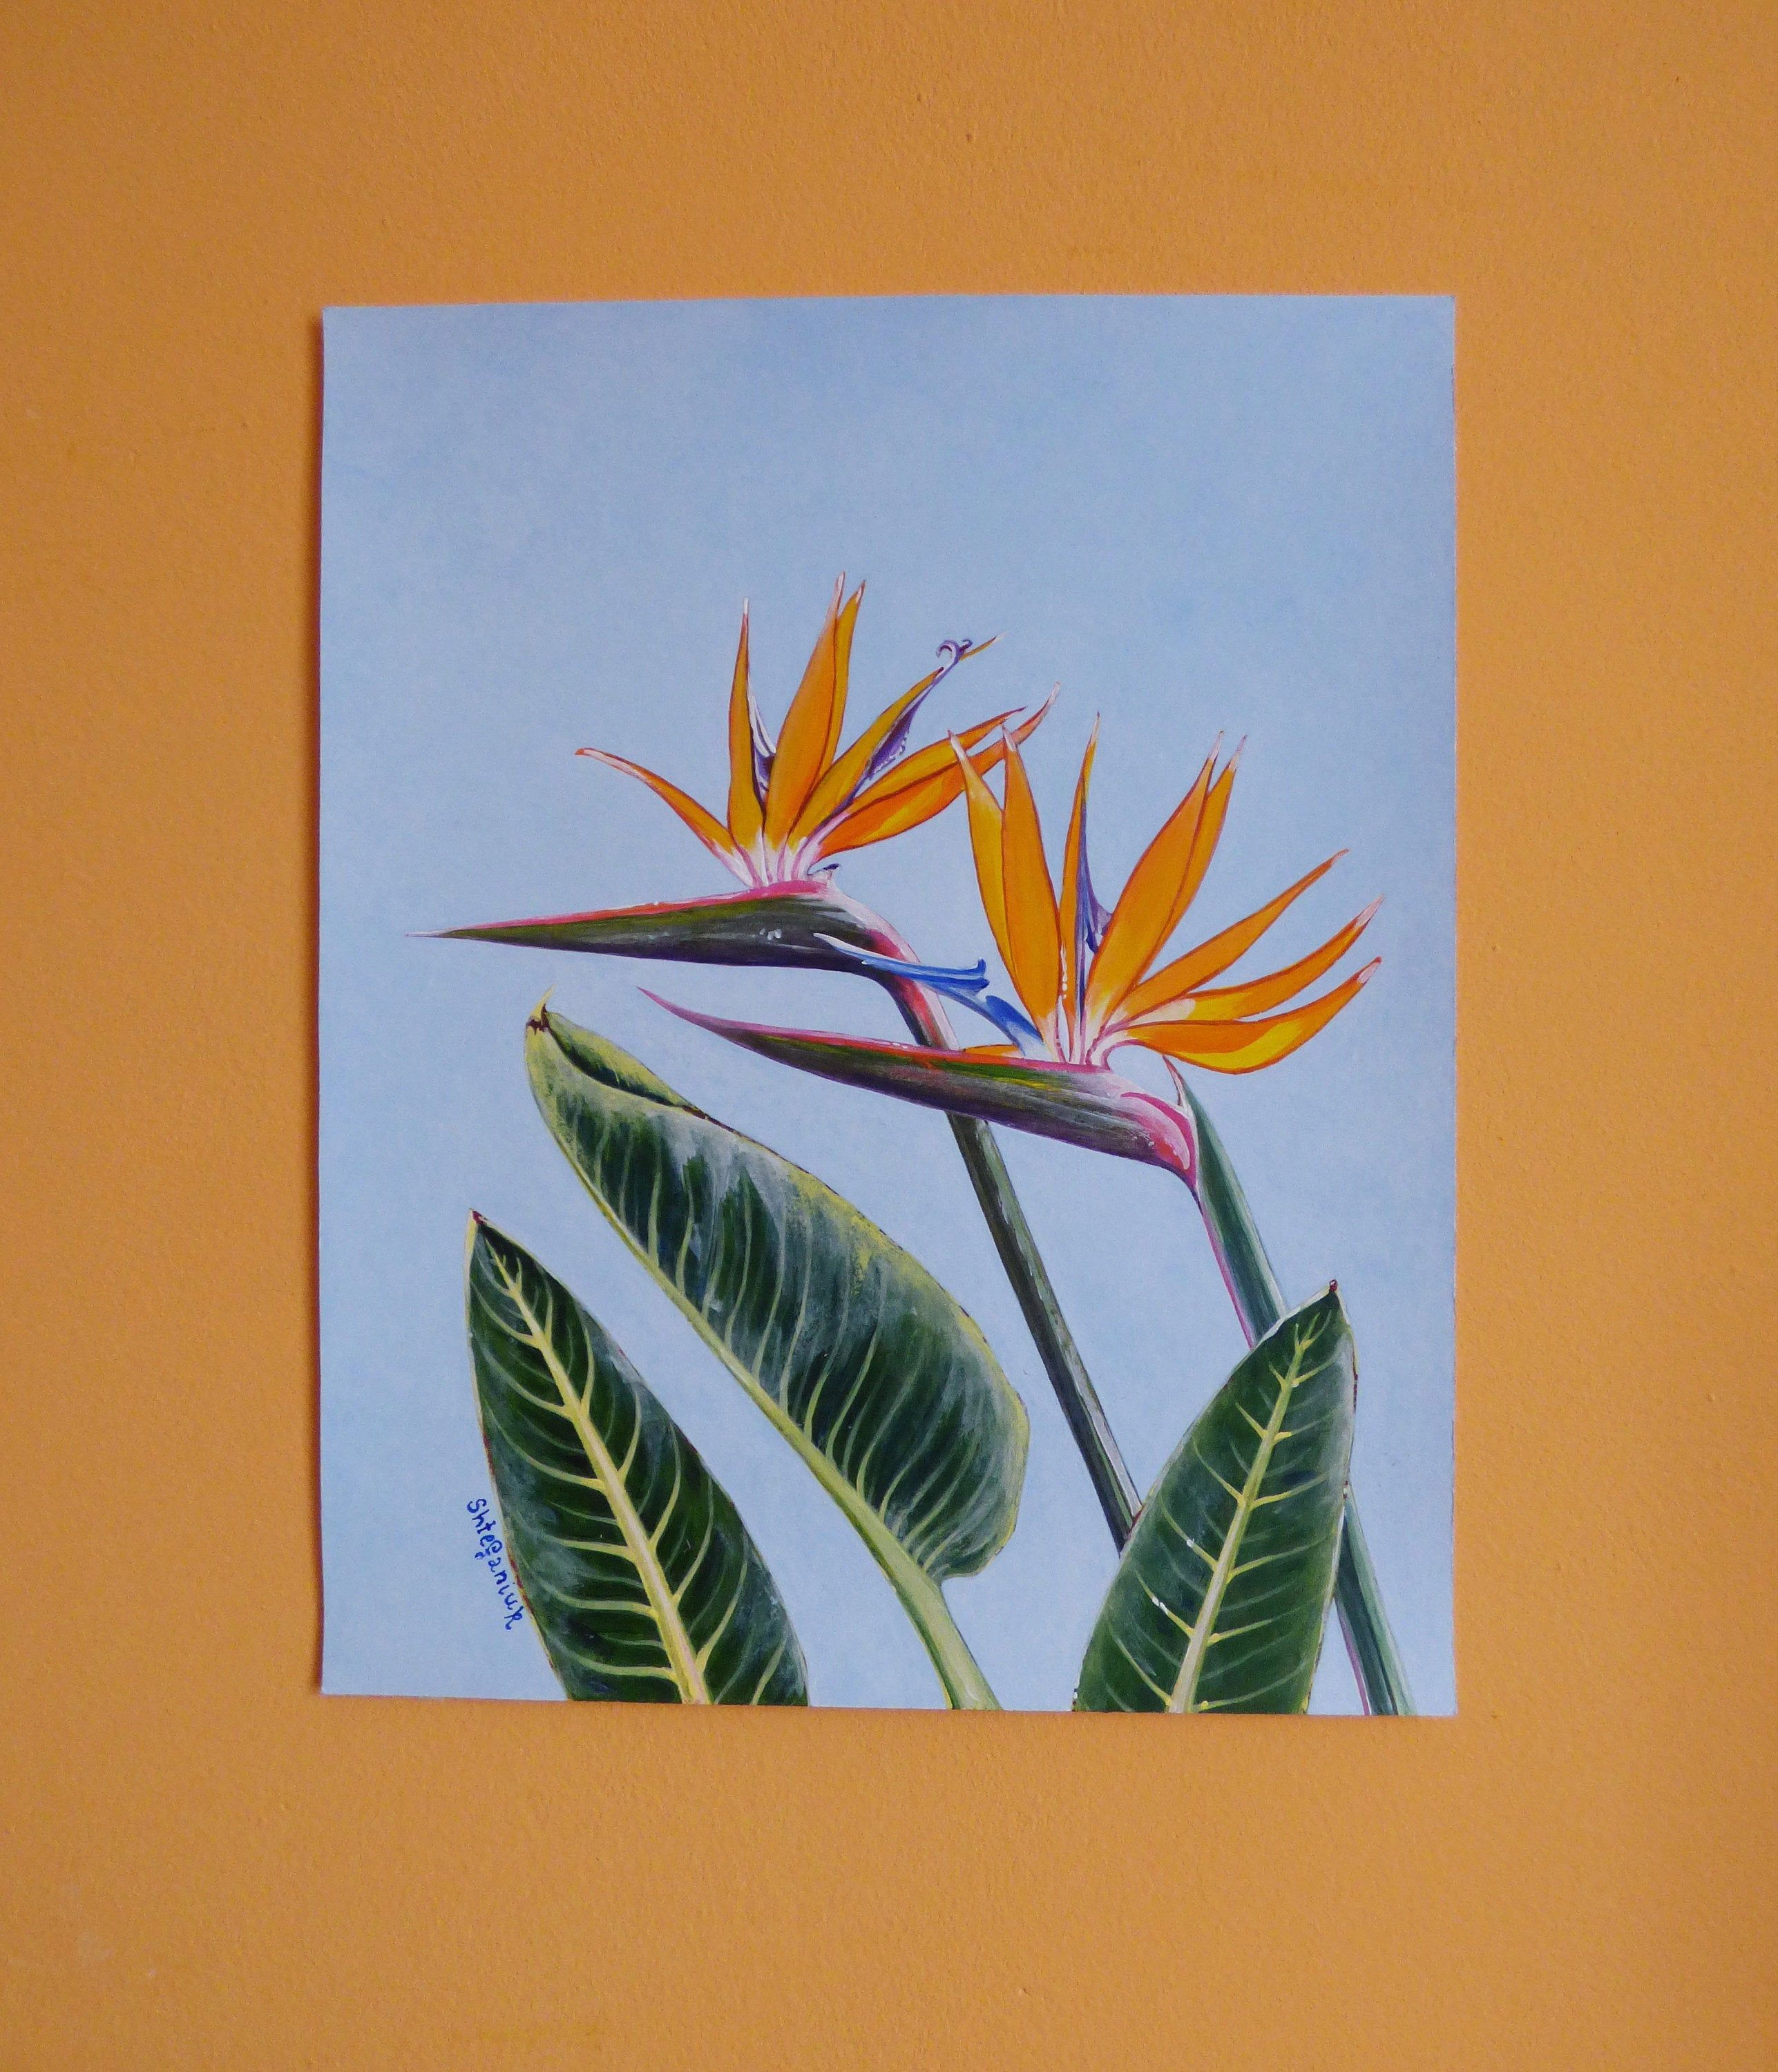 Bird Of Paradise, Strelitzia, 10″x8″, Tropical Plant, Hawaiian Flower, Acrylic on watercolor paper, original hand painted artwork, floral